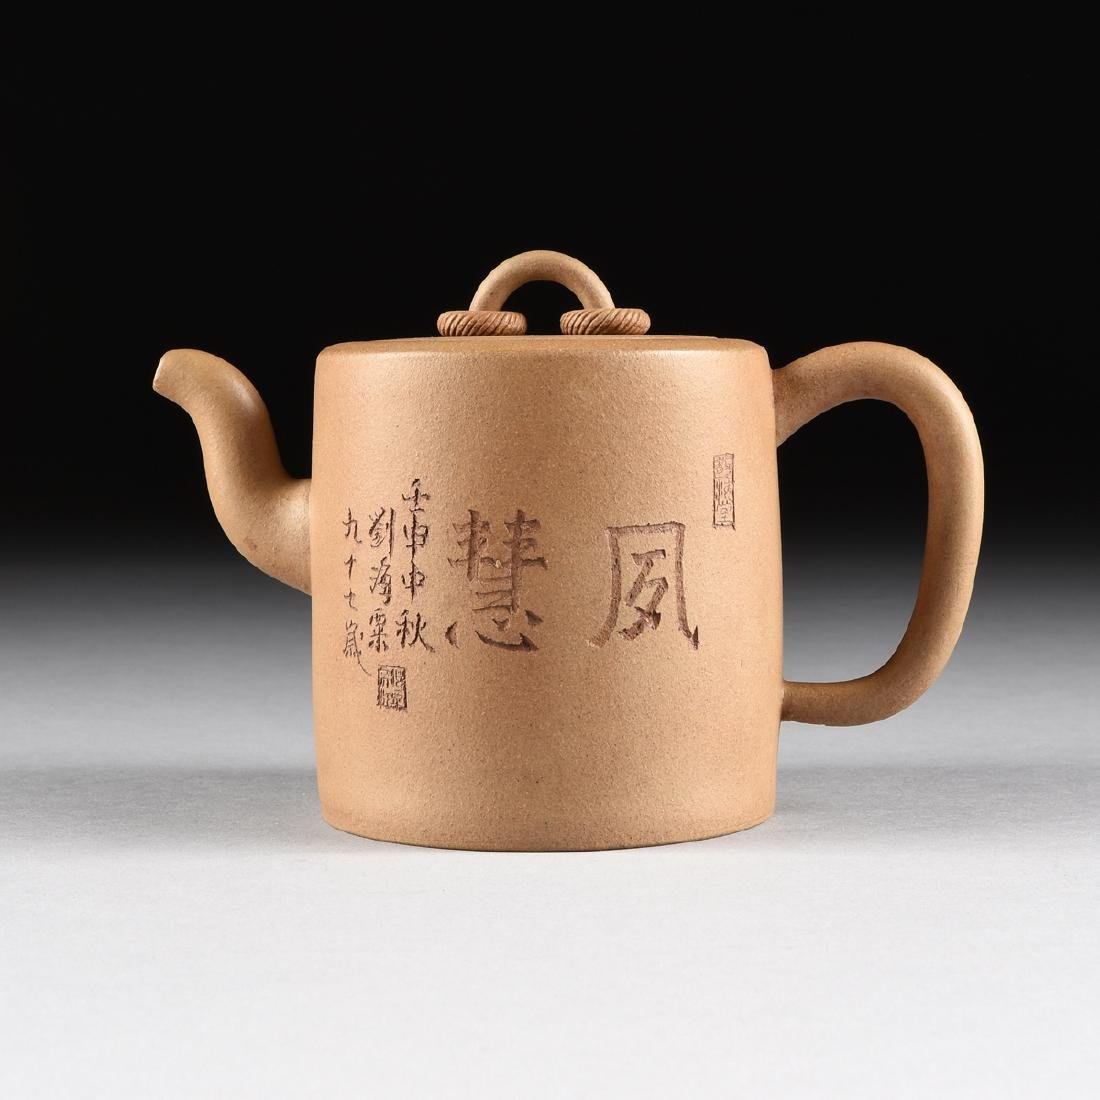 A CHINESE TAN STONEWARE TEAPOT, YIXING PROVINCE, LATE - 7